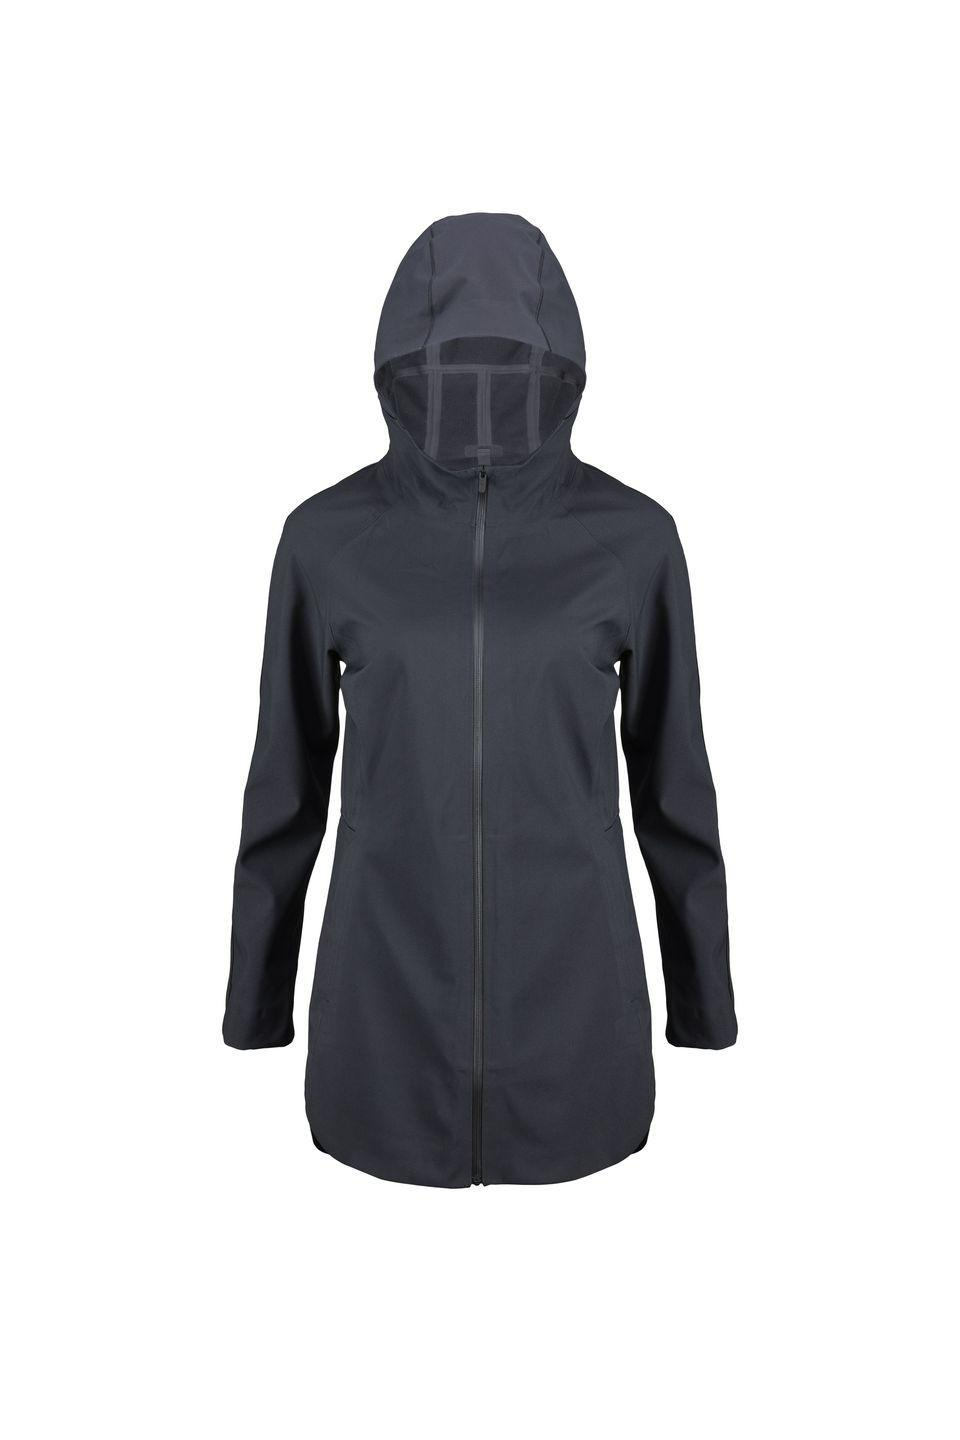 """<p><a class=""""link rapid-noclick-resp"""" href=""""https://go.redirectingat.com?id=127X1599956&url=https%3A%2F%2Fwww.lululemon.co.uk%2Fen-gb%2Fp%2Fglyde-along-softshell%2Fprod9200647.html%3Fdwvar_prod9200647_color%3D0001&sref=https%3A%2F%2Fwww.harpersbazaar.com%2Fuk%2Ffashion%2Fwhat-to-wear%2Fg35741851%2Fwaterproof-jackets%2F"""" rel=""""nofollow noopener"""" target=""""_blank"""" data-ylk=""""slk:SHOP NOW"""">SHOP NOW</a></p><p>Sleek and minimalist, Lululemon's raincoat is designed for on the move and comes with a fleece-backed lining for extra warmth.</p><p>Glyde Along Softshell, £198, <a href=""""https://www.lululemon.co.uk/en-gb/p/glyde-along-softshell/prod9200647.html?dwvar_prod9200647_color=0001"""" rel=""""nofollow noopener"""" target=""""_blank"""" data-ylk=""""slk:Lululemon"""" class=""""link rapid-noclick-resp"""">Lululemon</a></p>"""